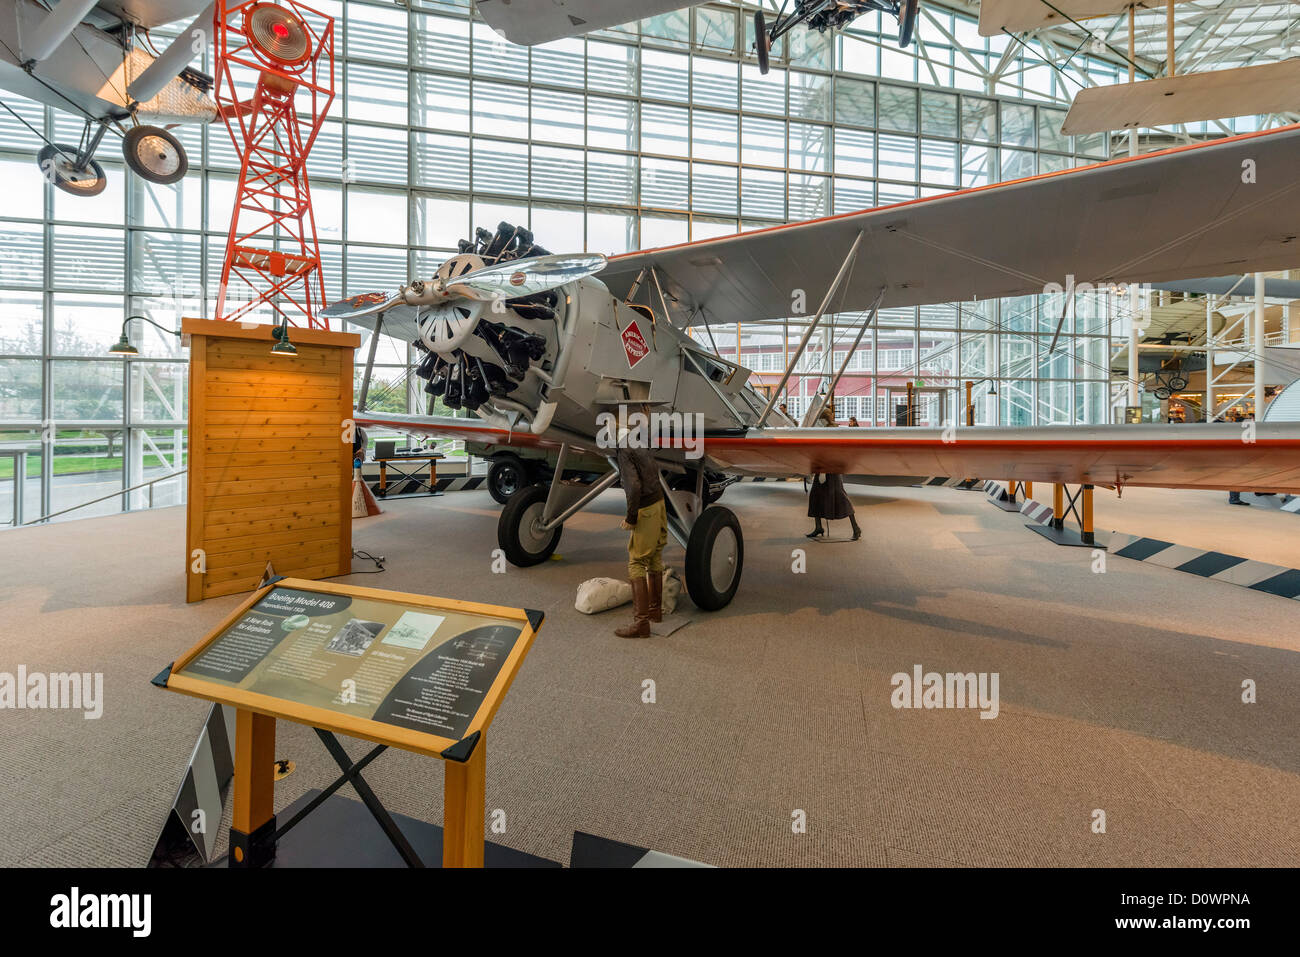 A replica 1928 Boeing Model 40B airmail plane, The Museum of Flight, Seattle, Washington, USA - Stock Image